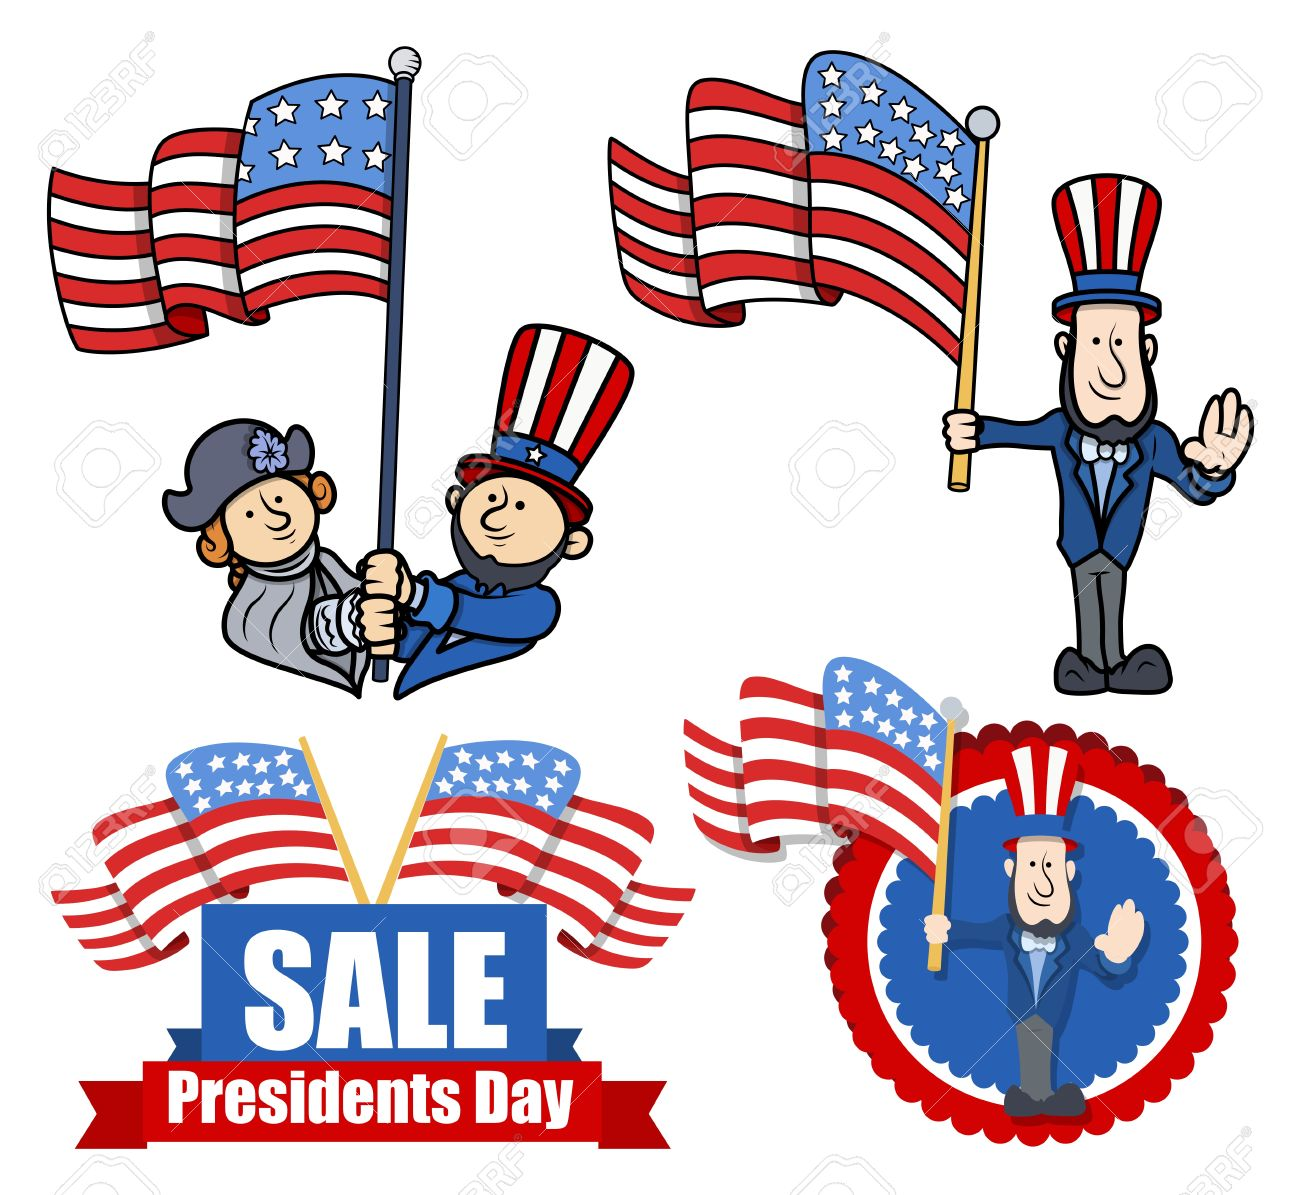 Various Clip-Art and Design for Presidents Day - 22060203